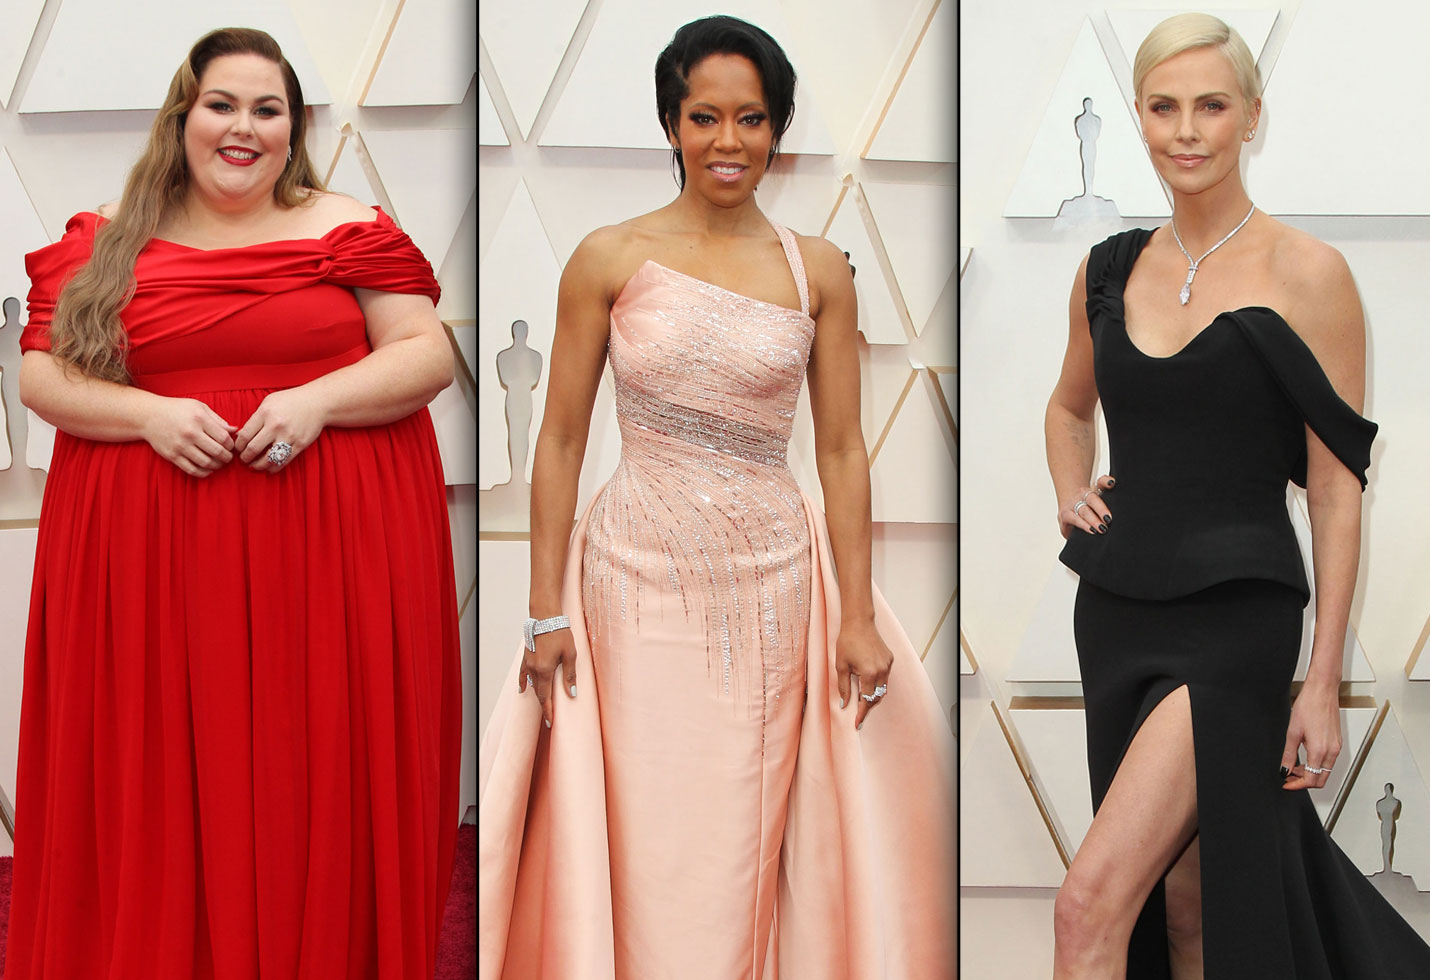 Chrissy Metz, Regina King and Charlize Theron